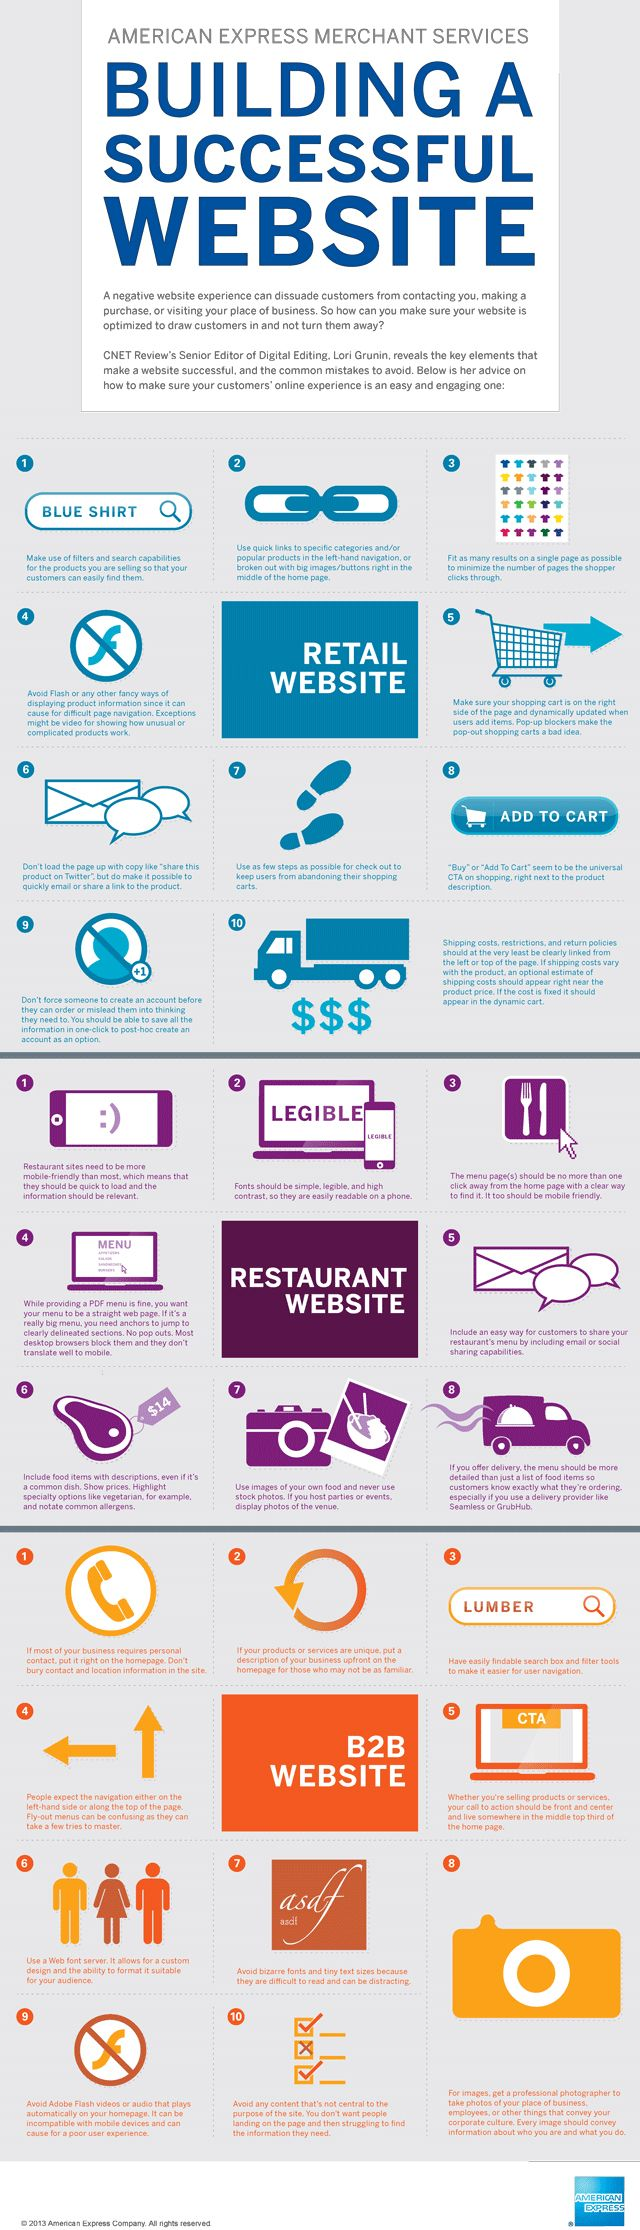 26 Tips for a More Successful Business Website  | web design inspiration | digital media arts college | www.dmac.edu | 561.391.1148